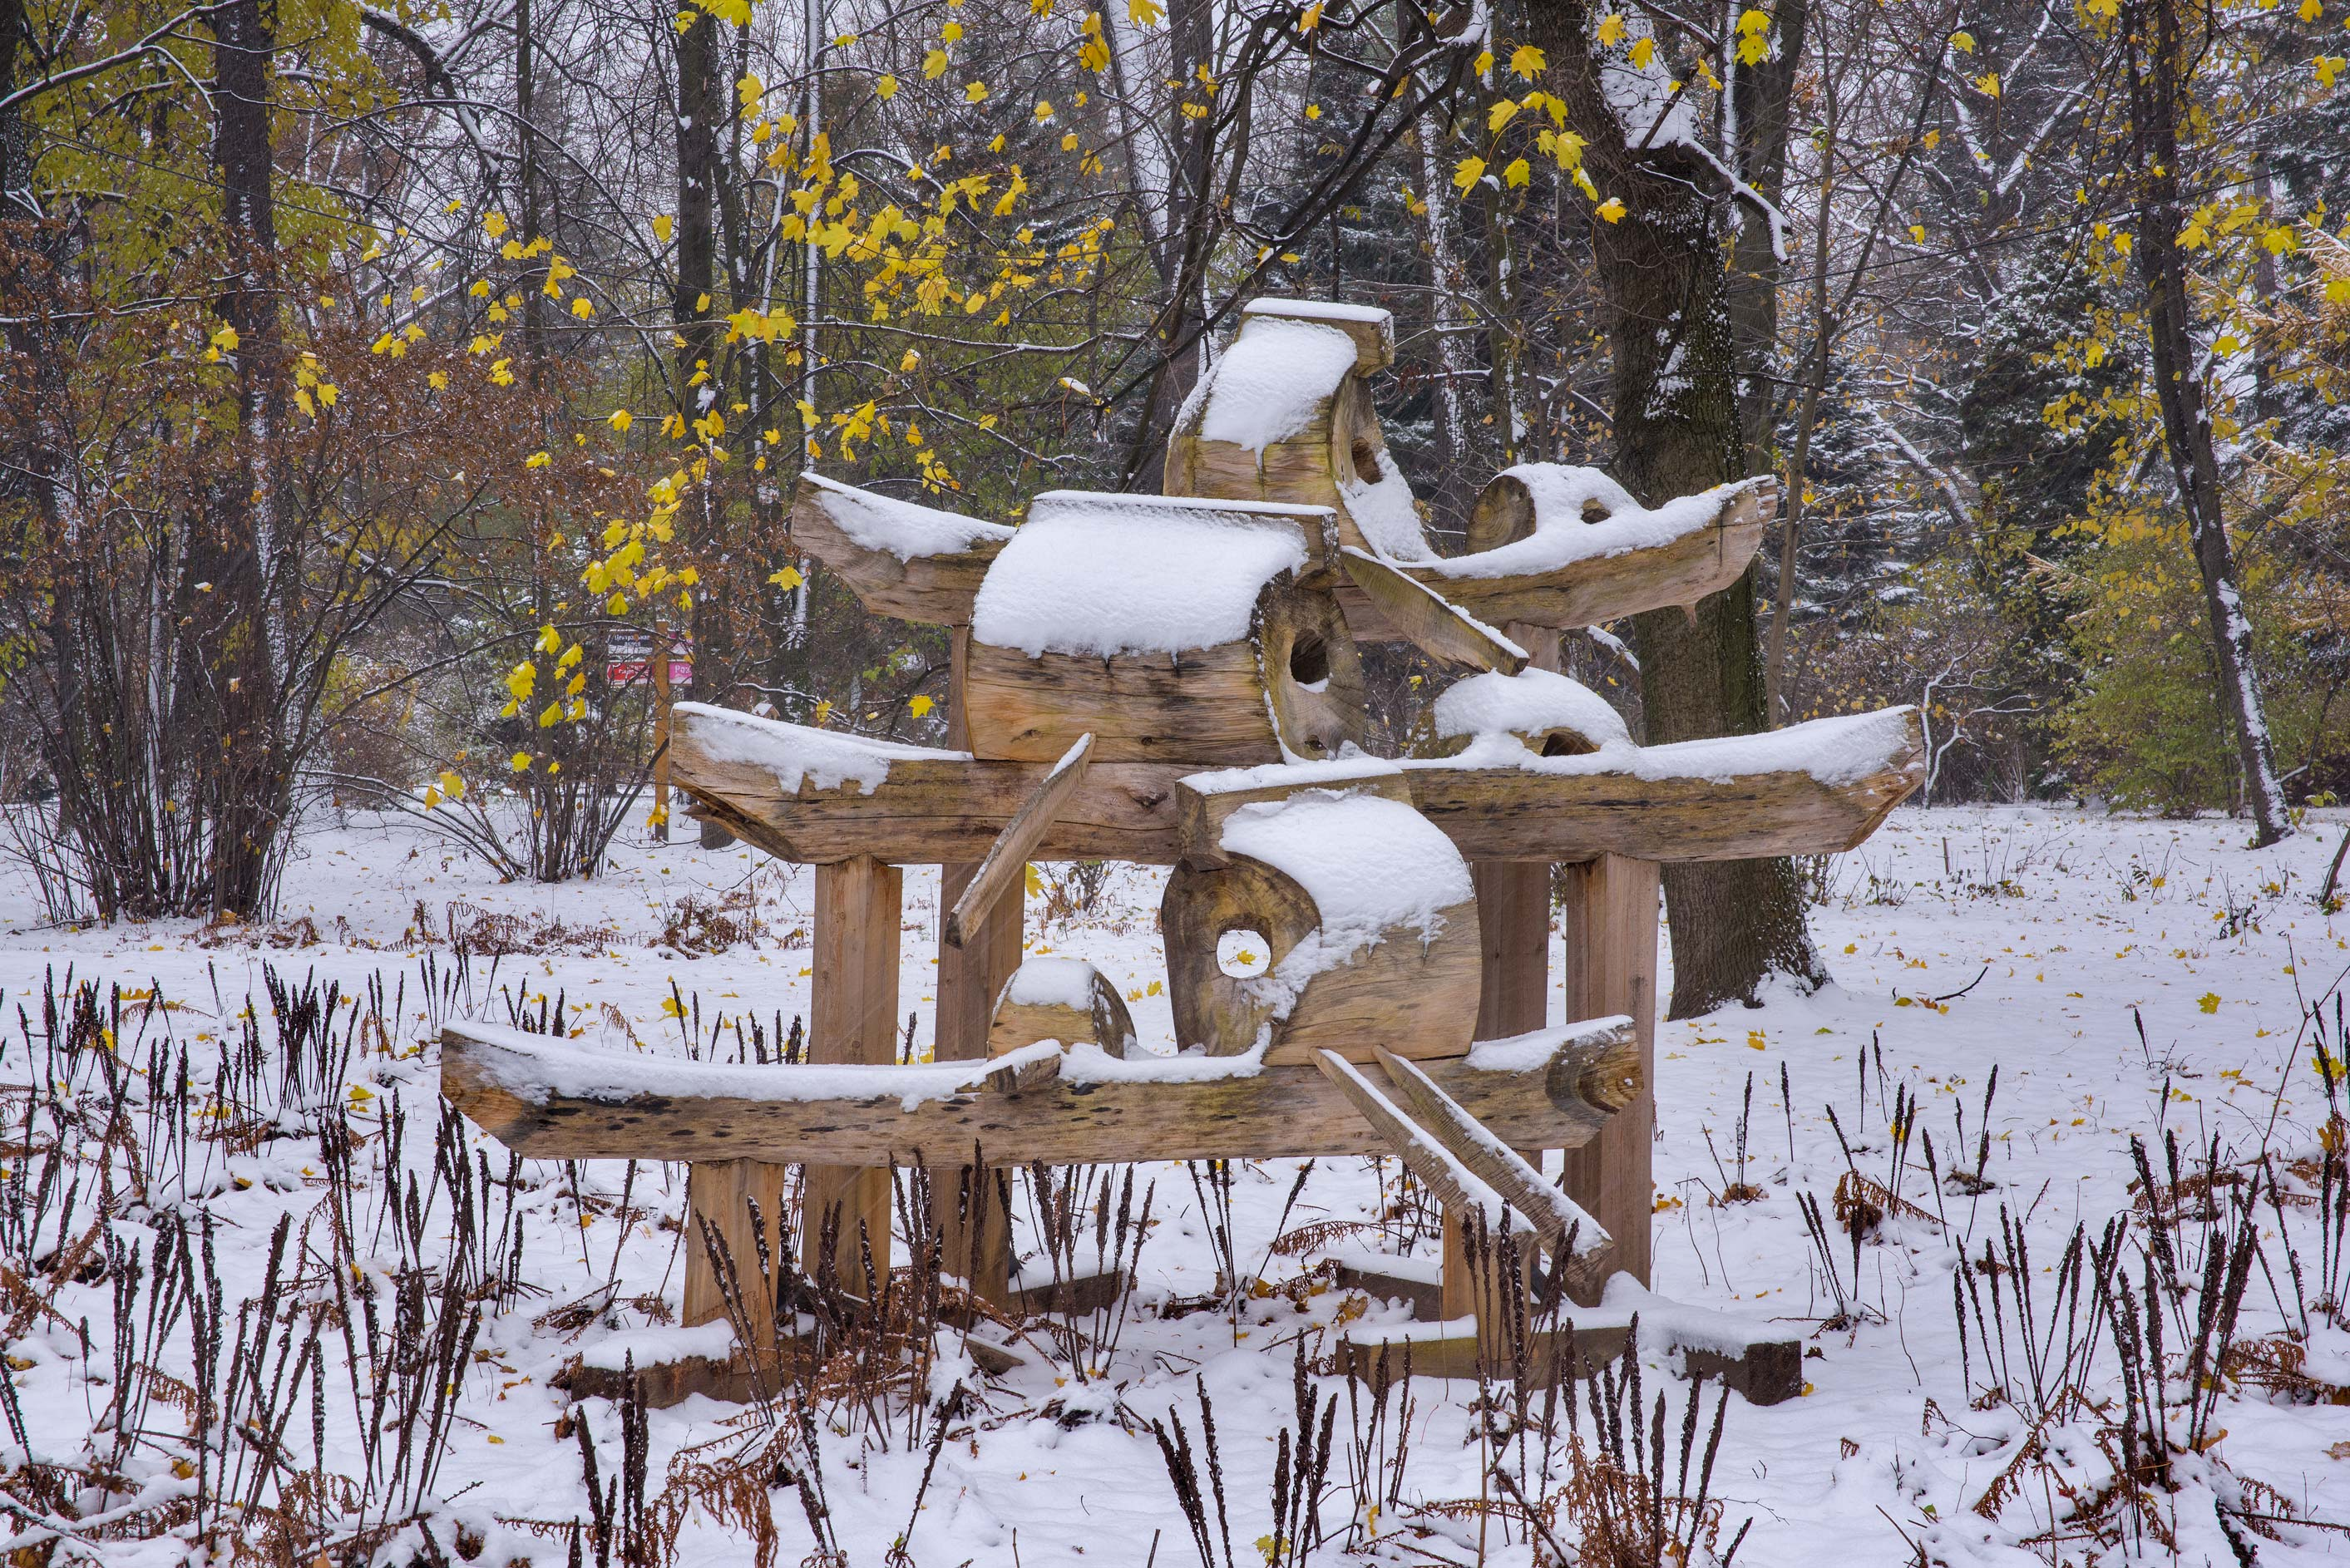 Rowers wooden sculpture in snow in Botanic...Institute. St.Petersburg, Russia